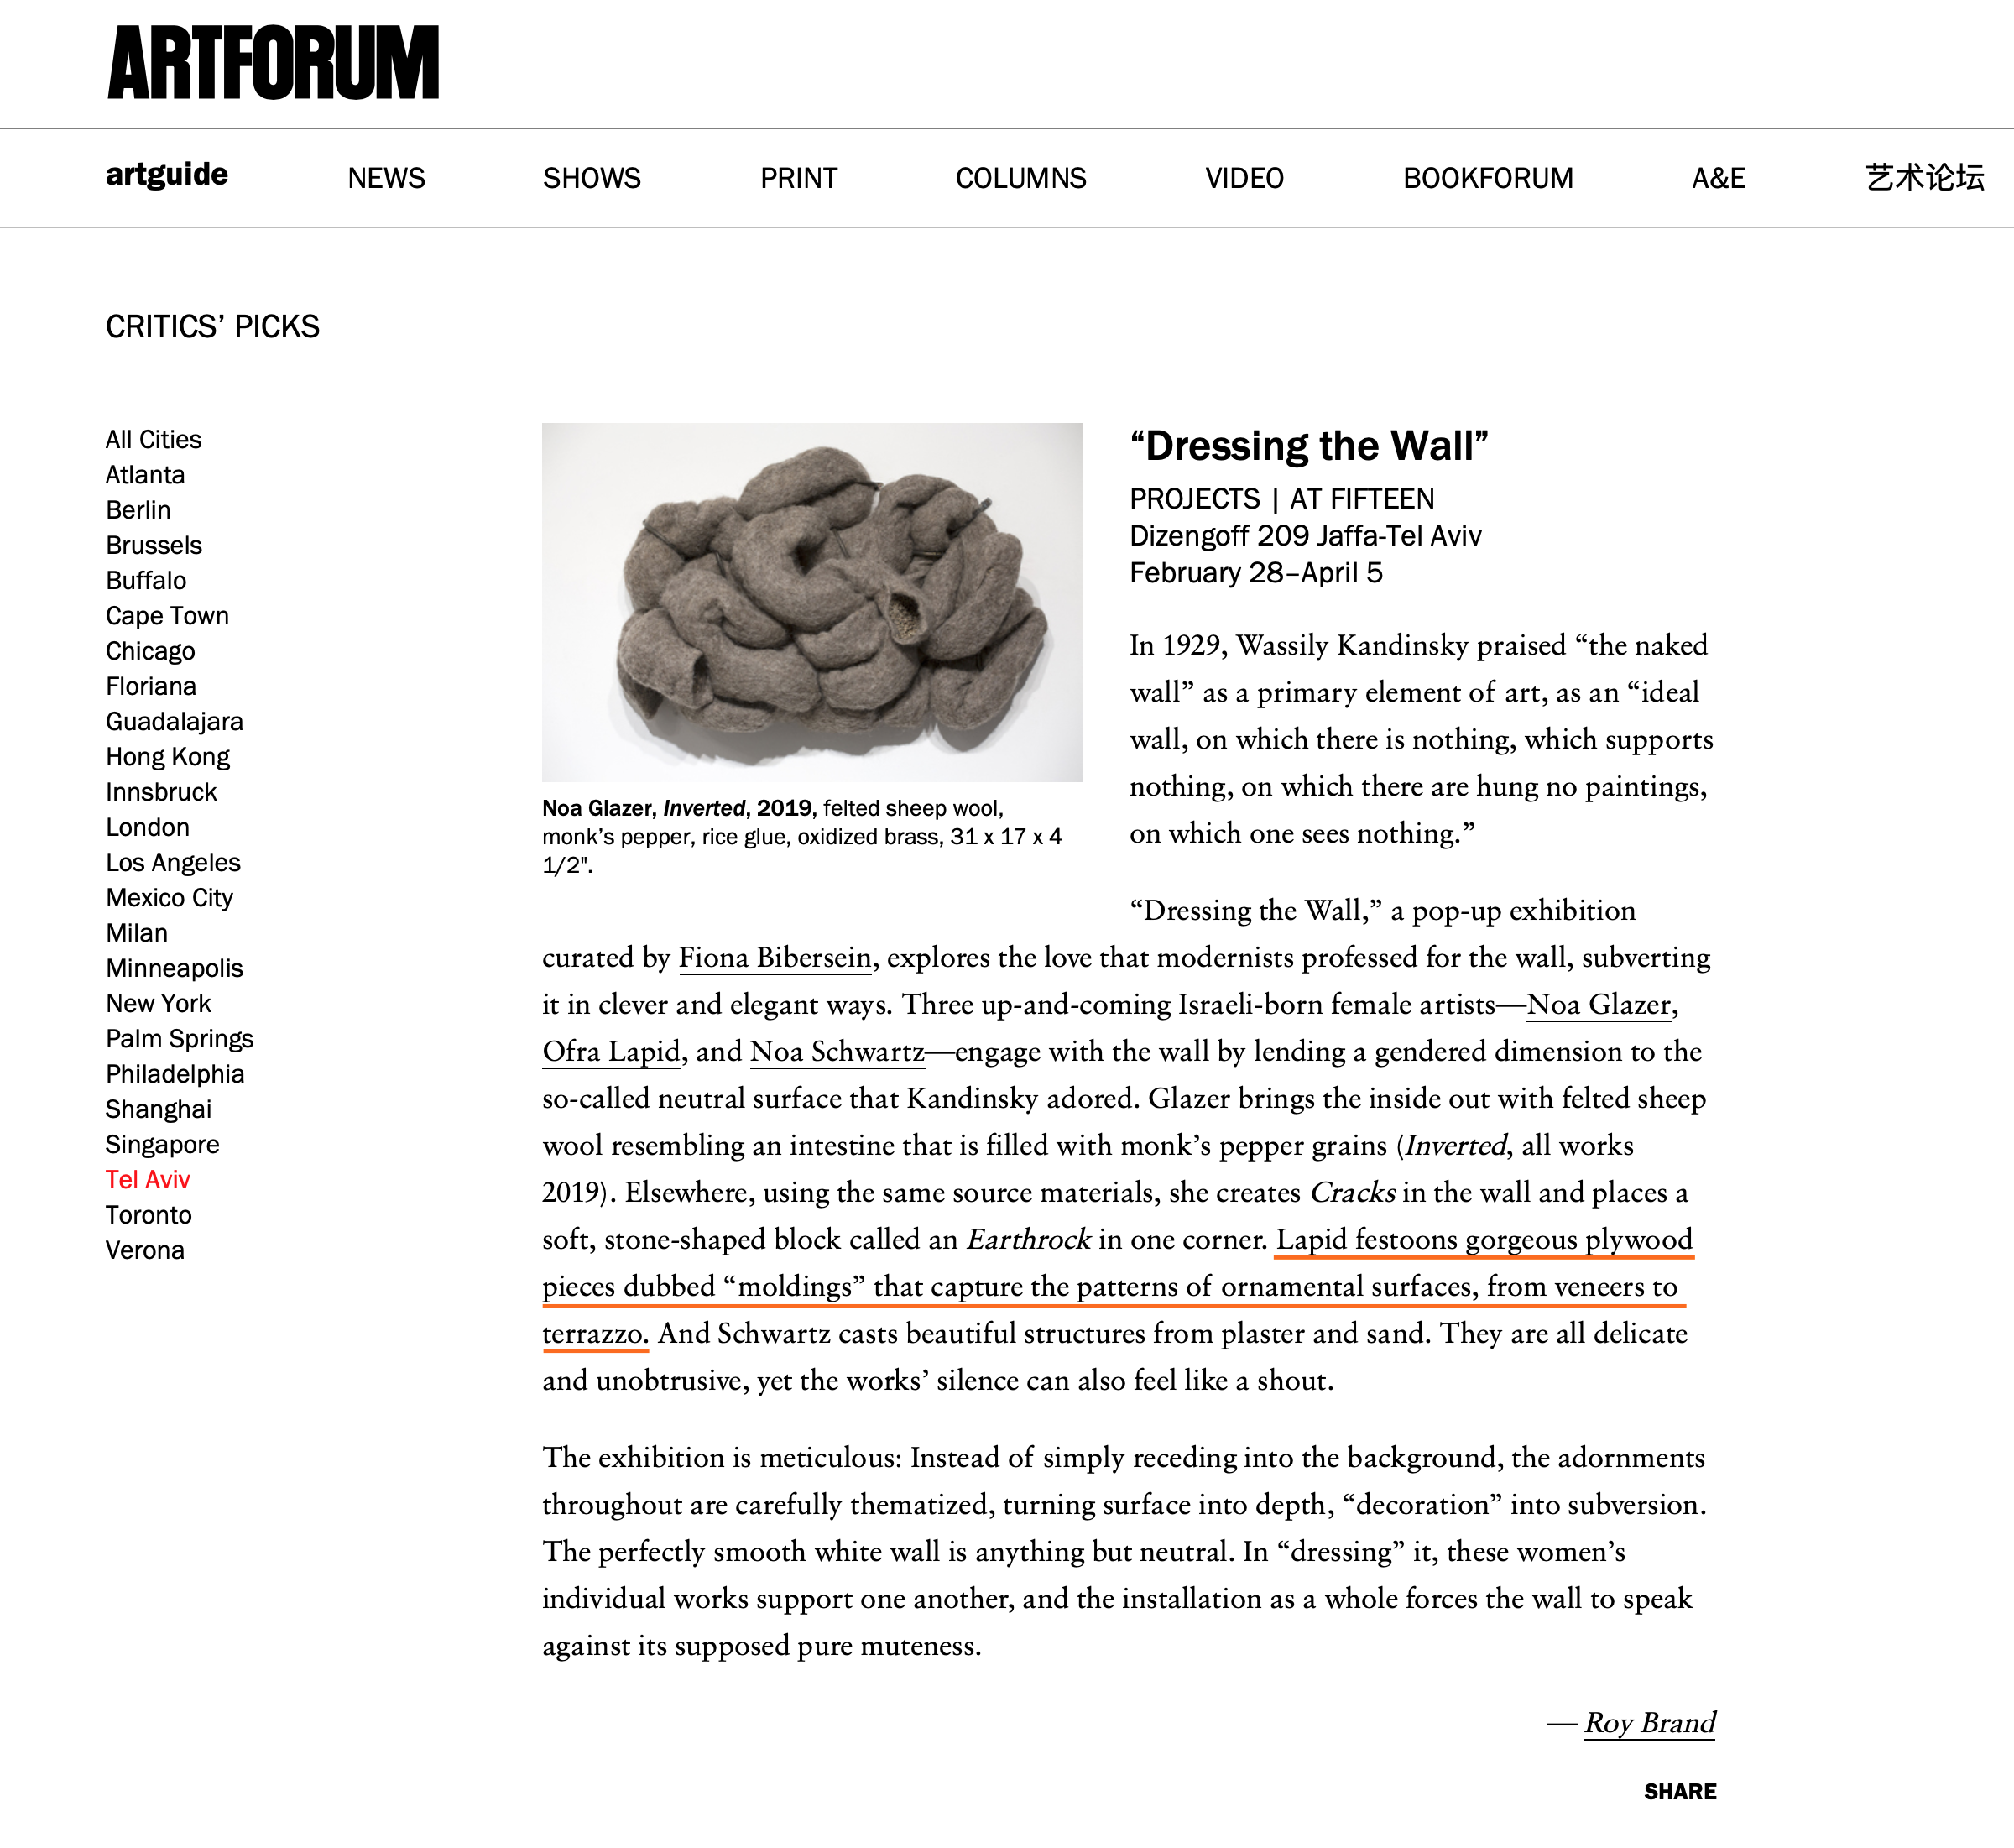 Review at Artforum, March 2019